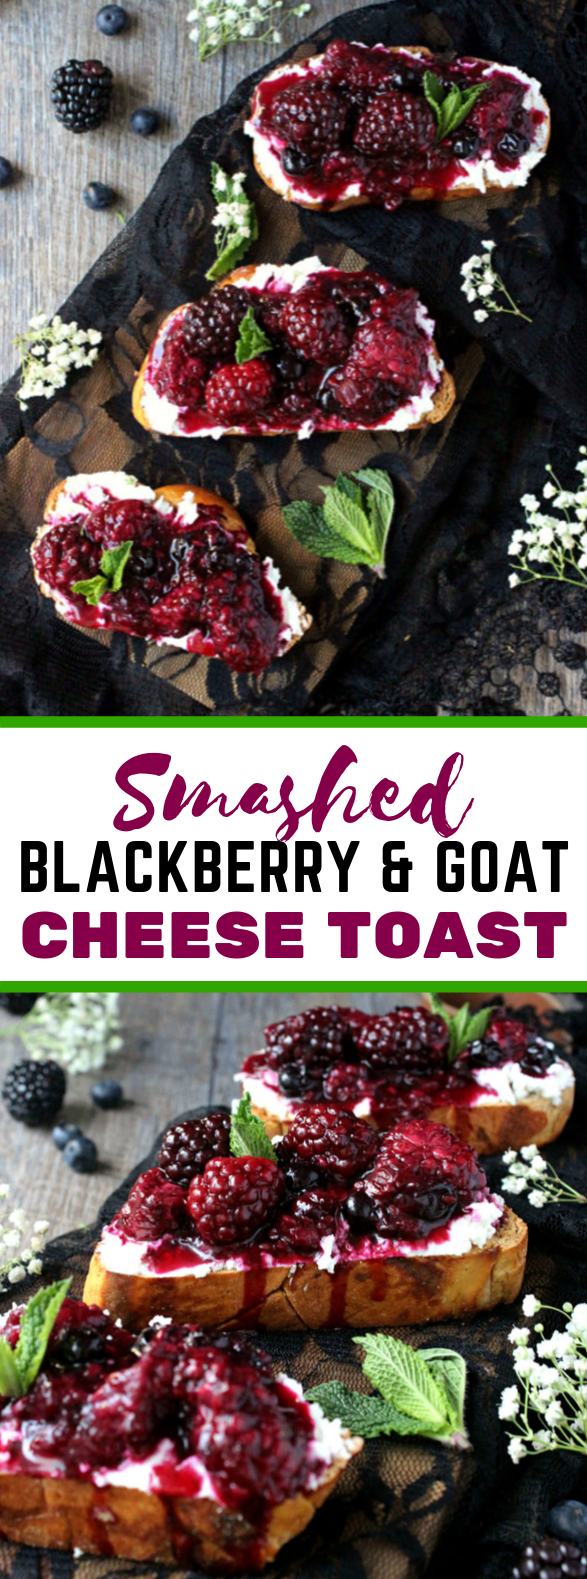 SMASHED BLACKBERRY & GOAT CHEESE TOASTS #dinner #healthy